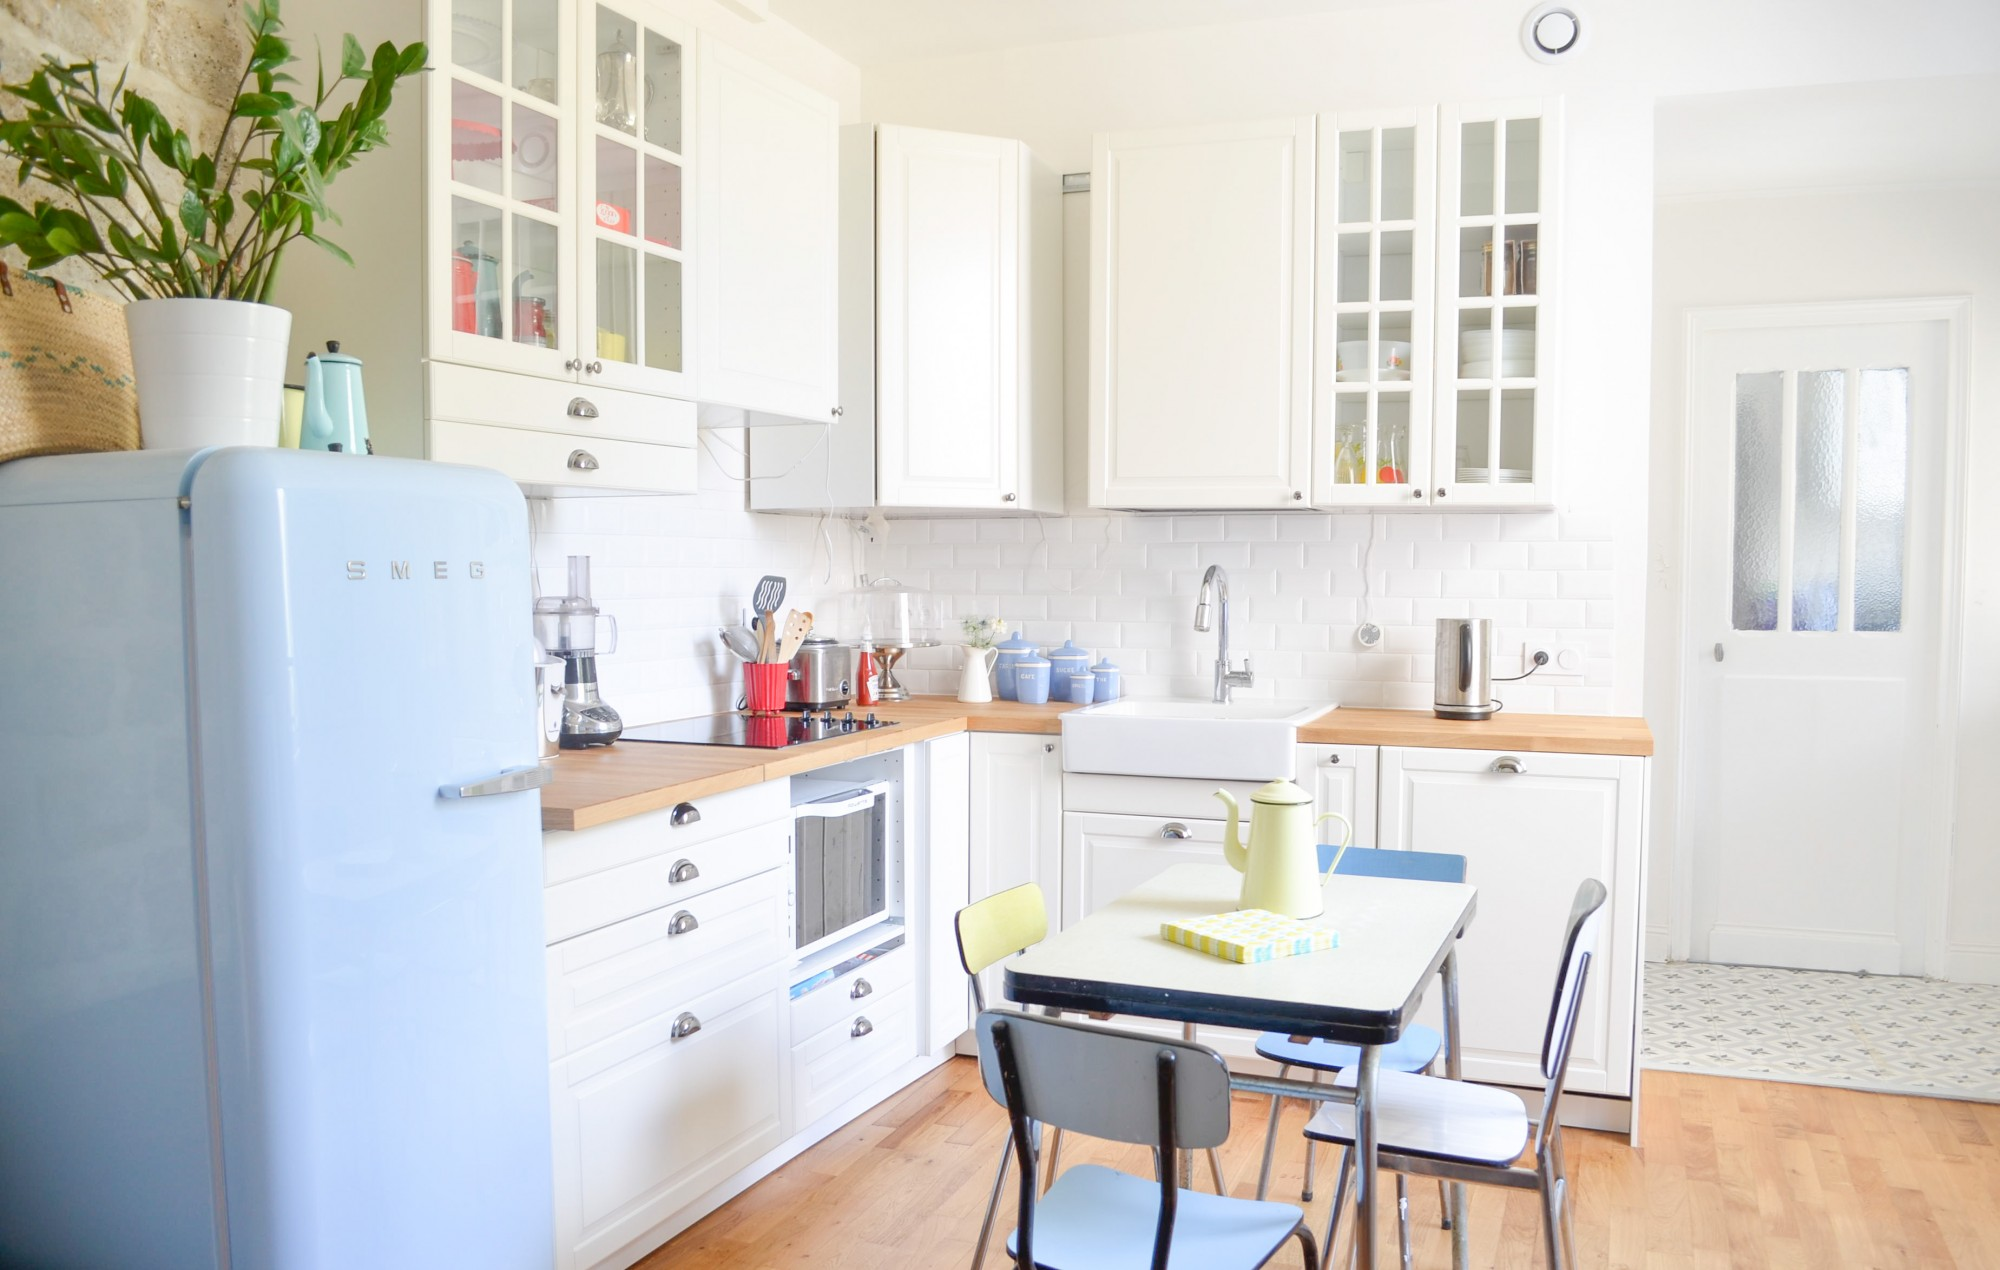 Installer Frigo Encastrable Ikea travaux | home nom nom